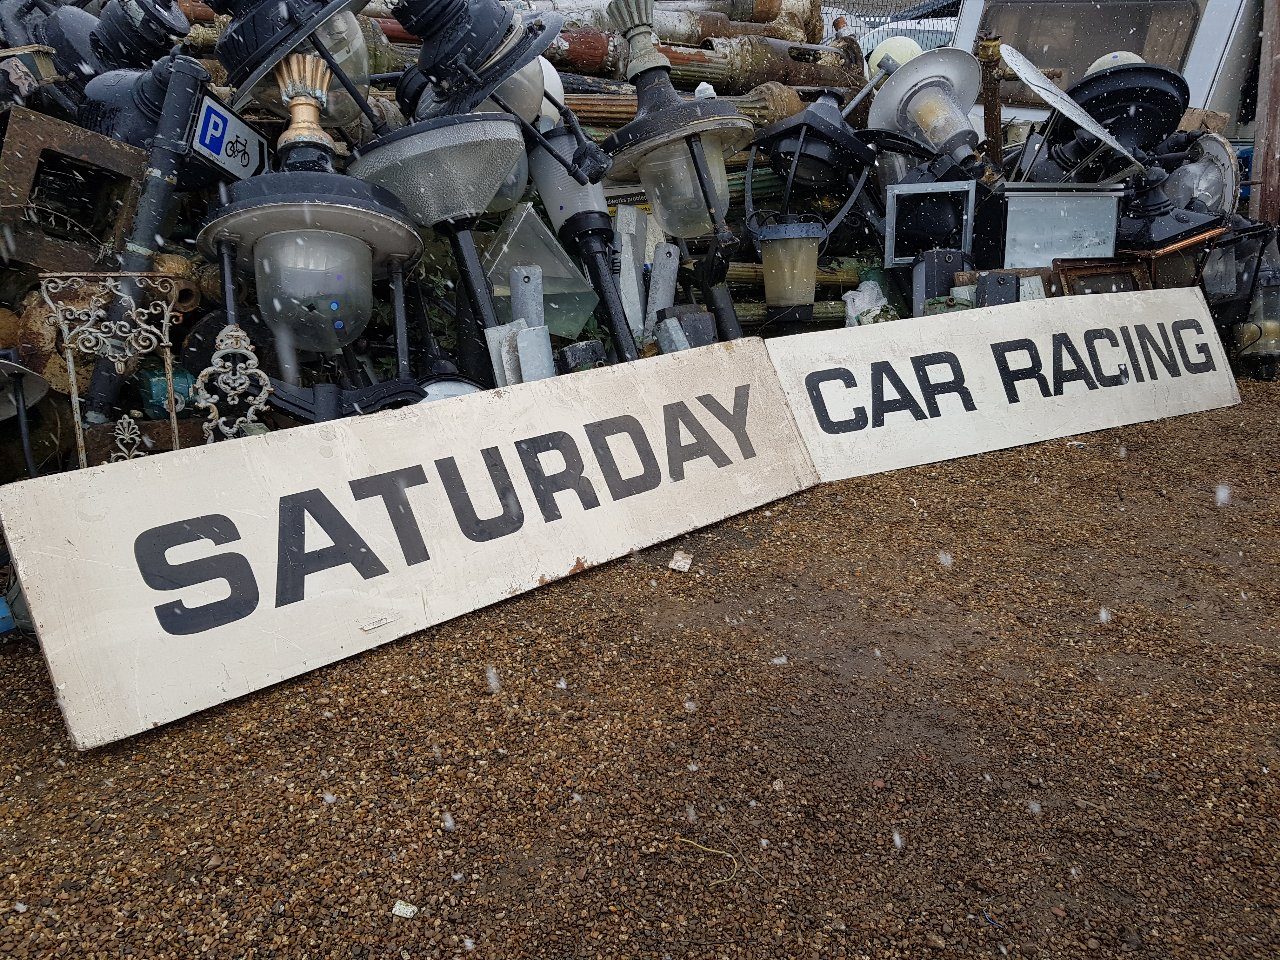 Wimbledon Stadium, Car Racing Board